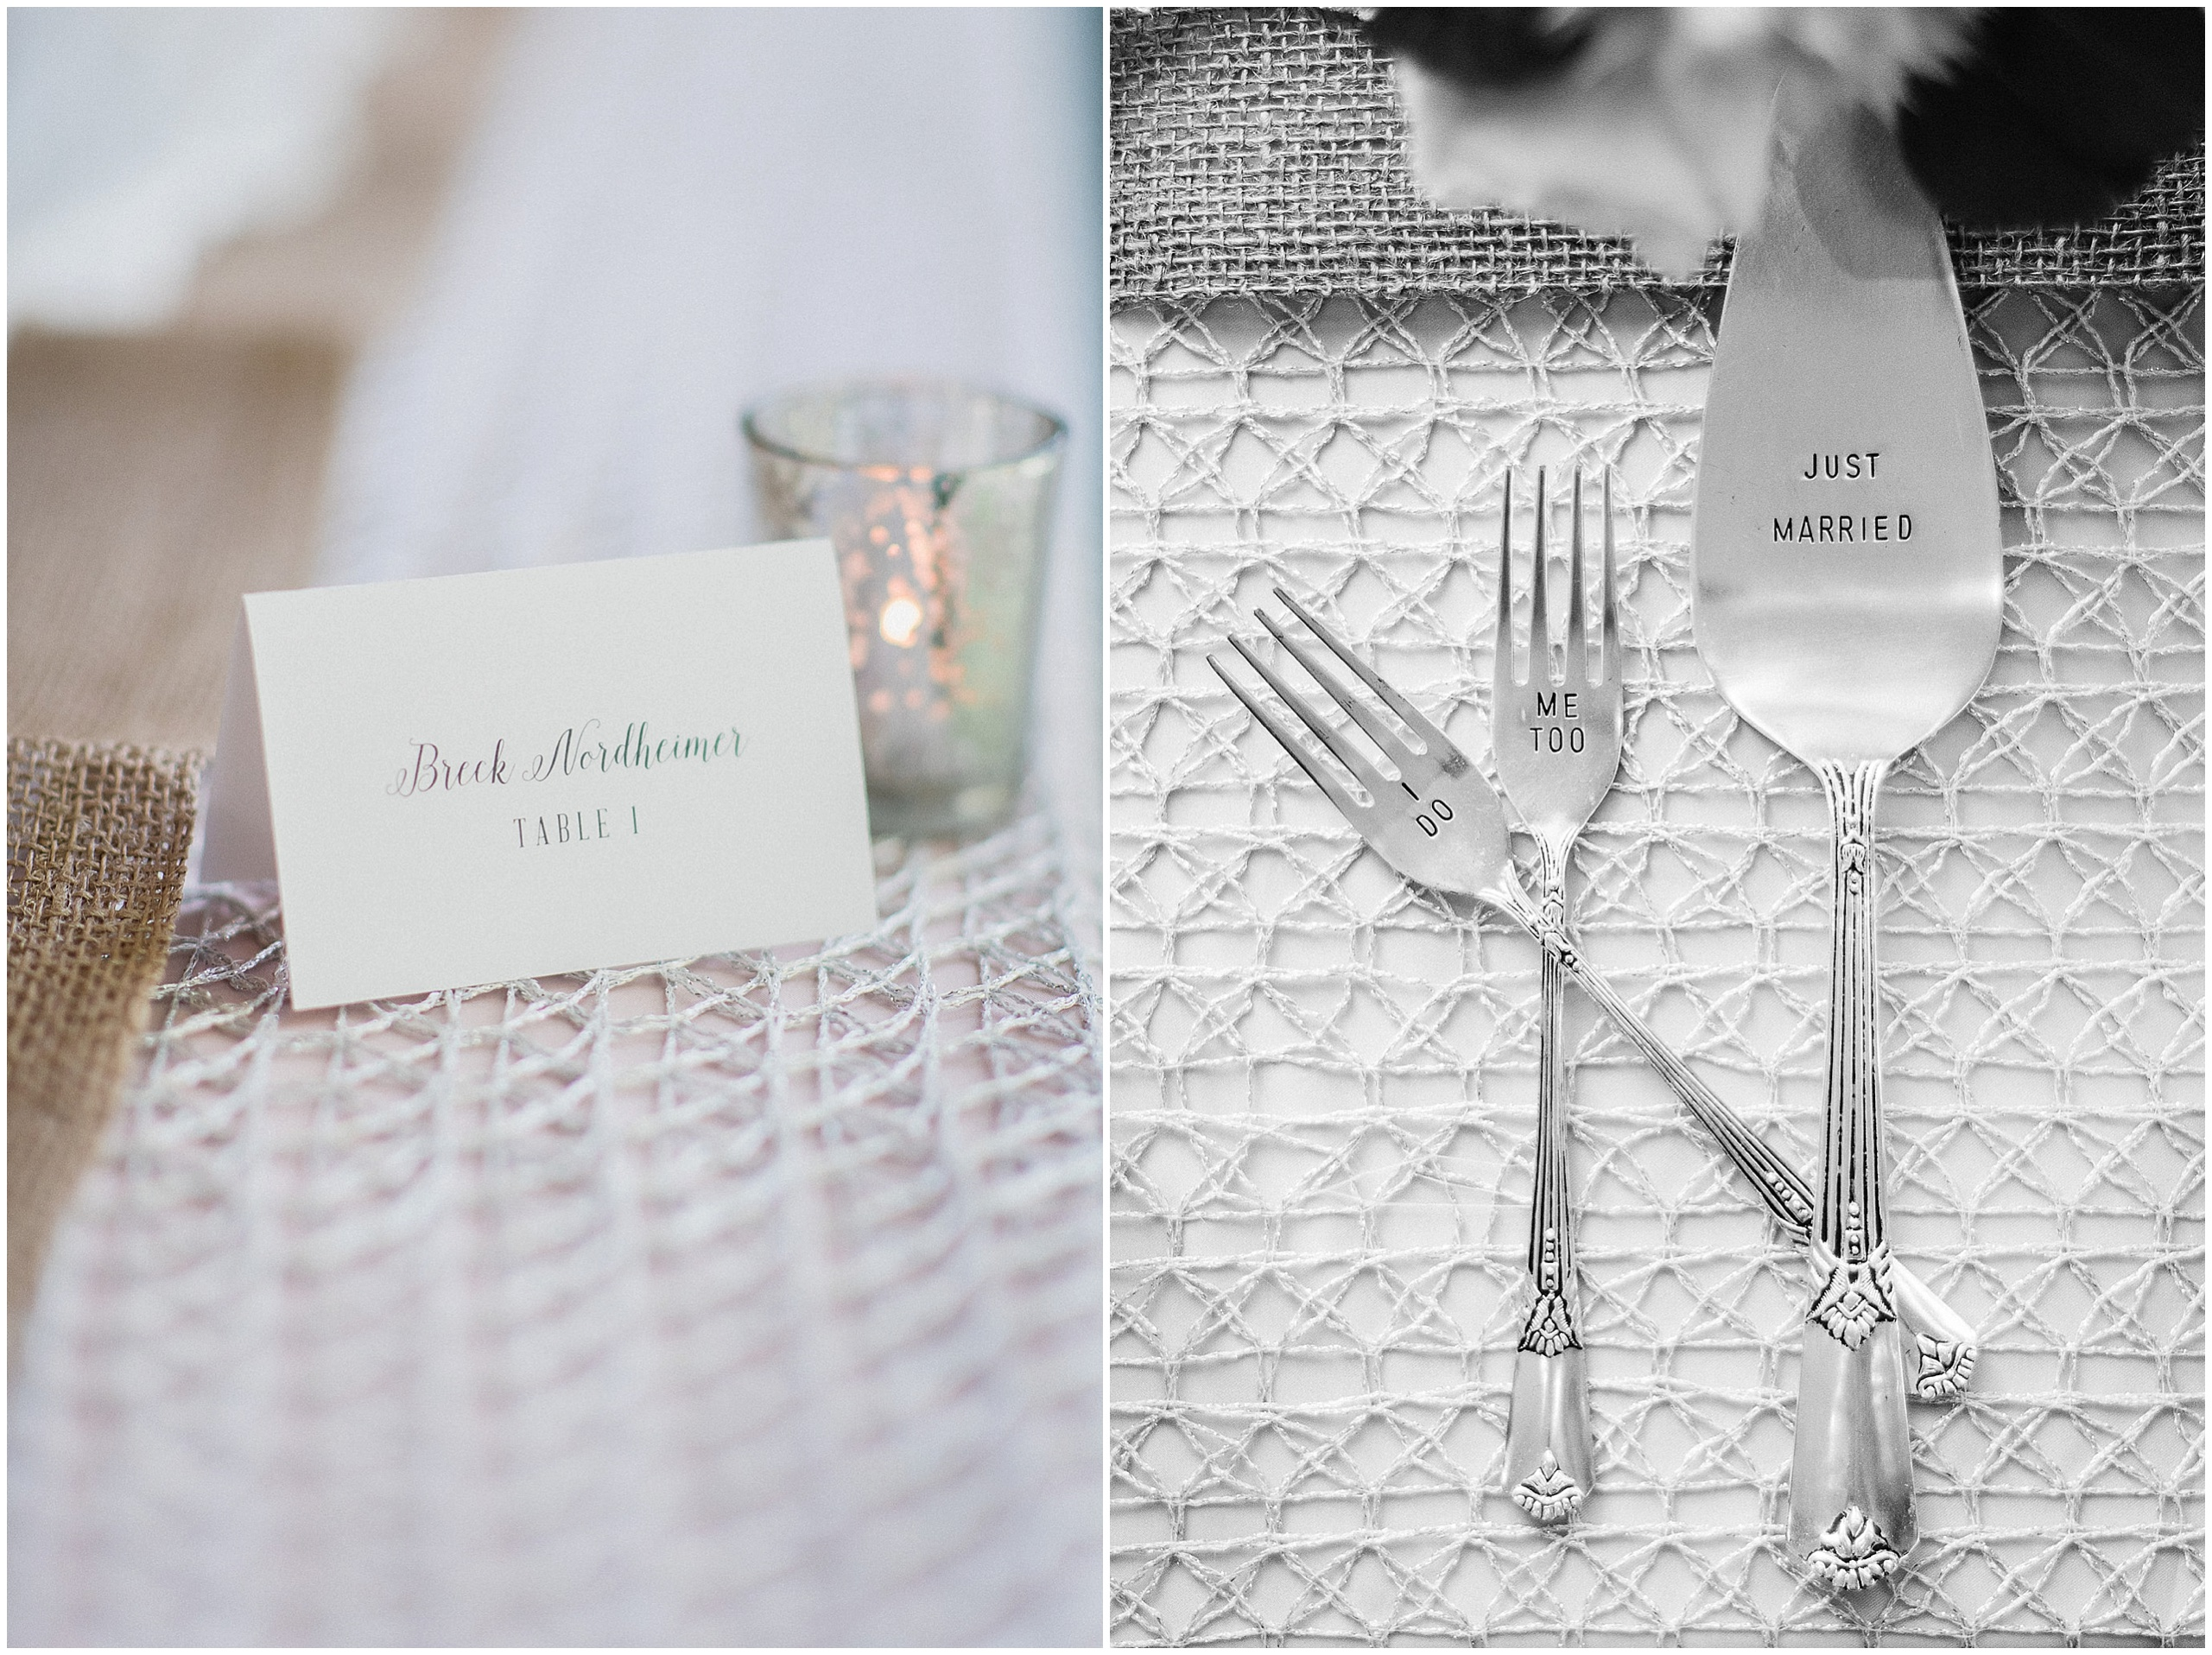 Antique silver wedding cake server and forks. 'I do, Me too' forks photographed by Jenn Kavanagh Photography